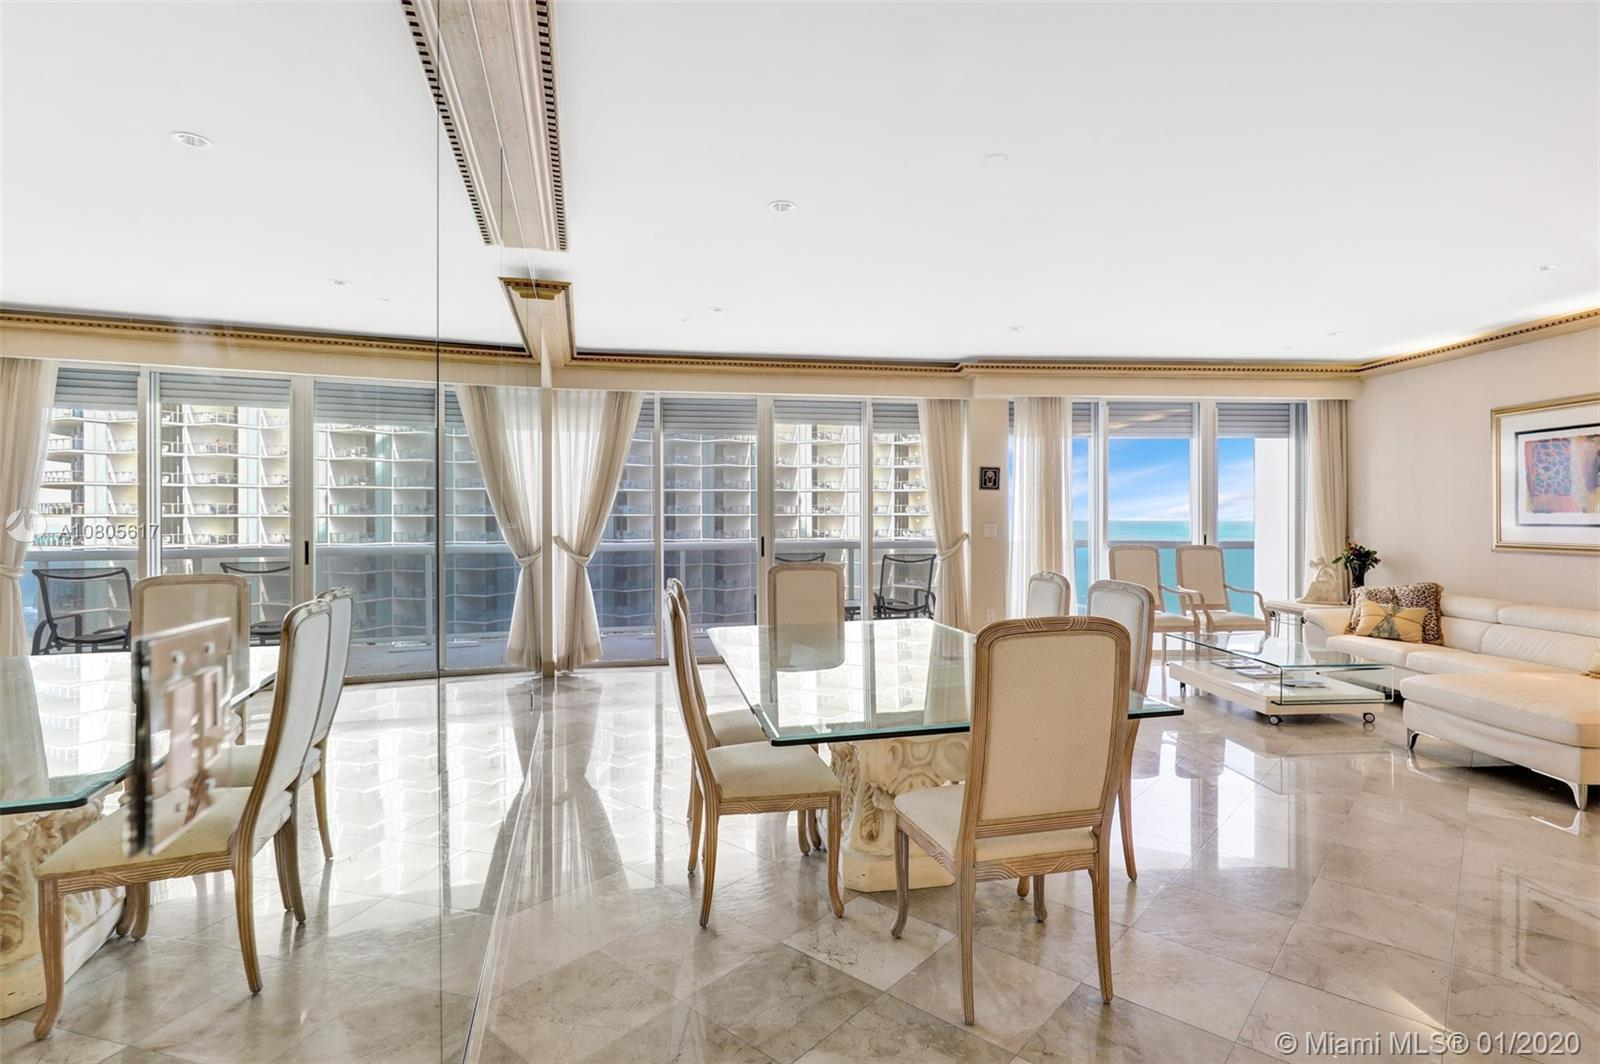 THE BEST VIEWS IN MIAMI WITH OCEAN AND INTRACOASTAL VIEWS. EXCELLENT FLOOR PLAN. OCEAN VIEW FROM EVE